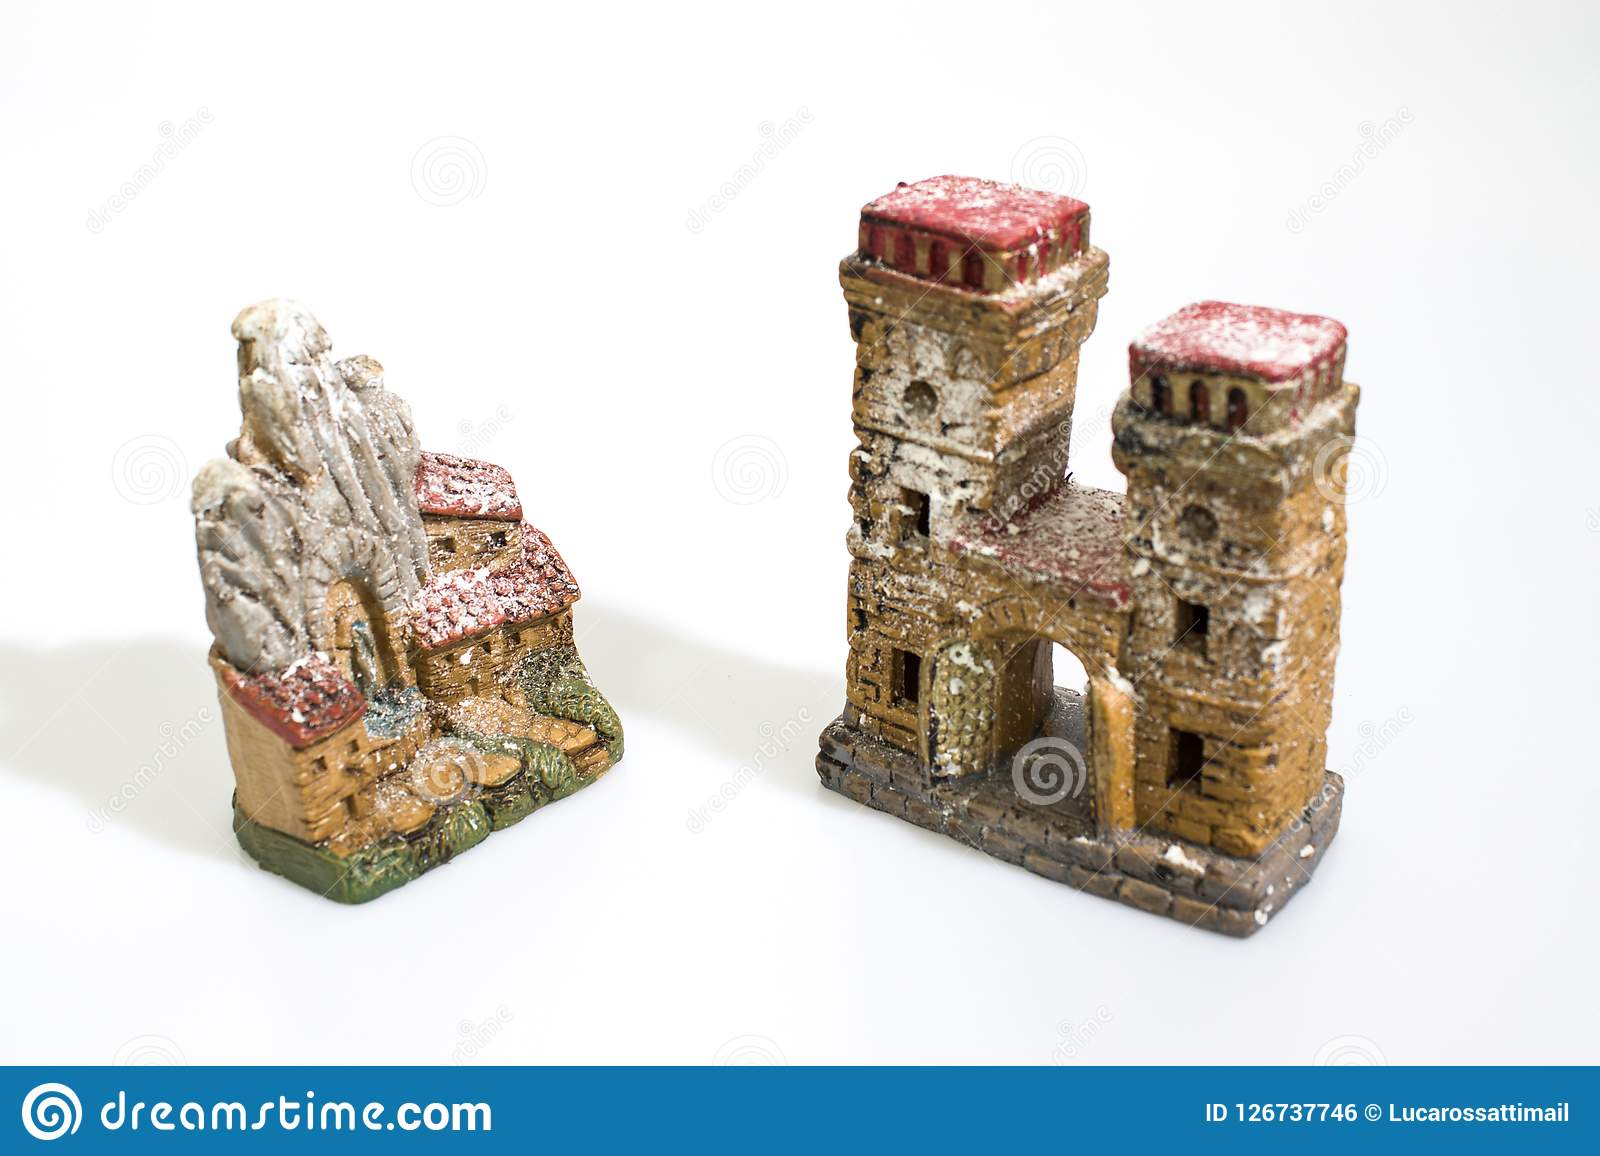 Christmas decorations, nativity scene houses isolated in a white